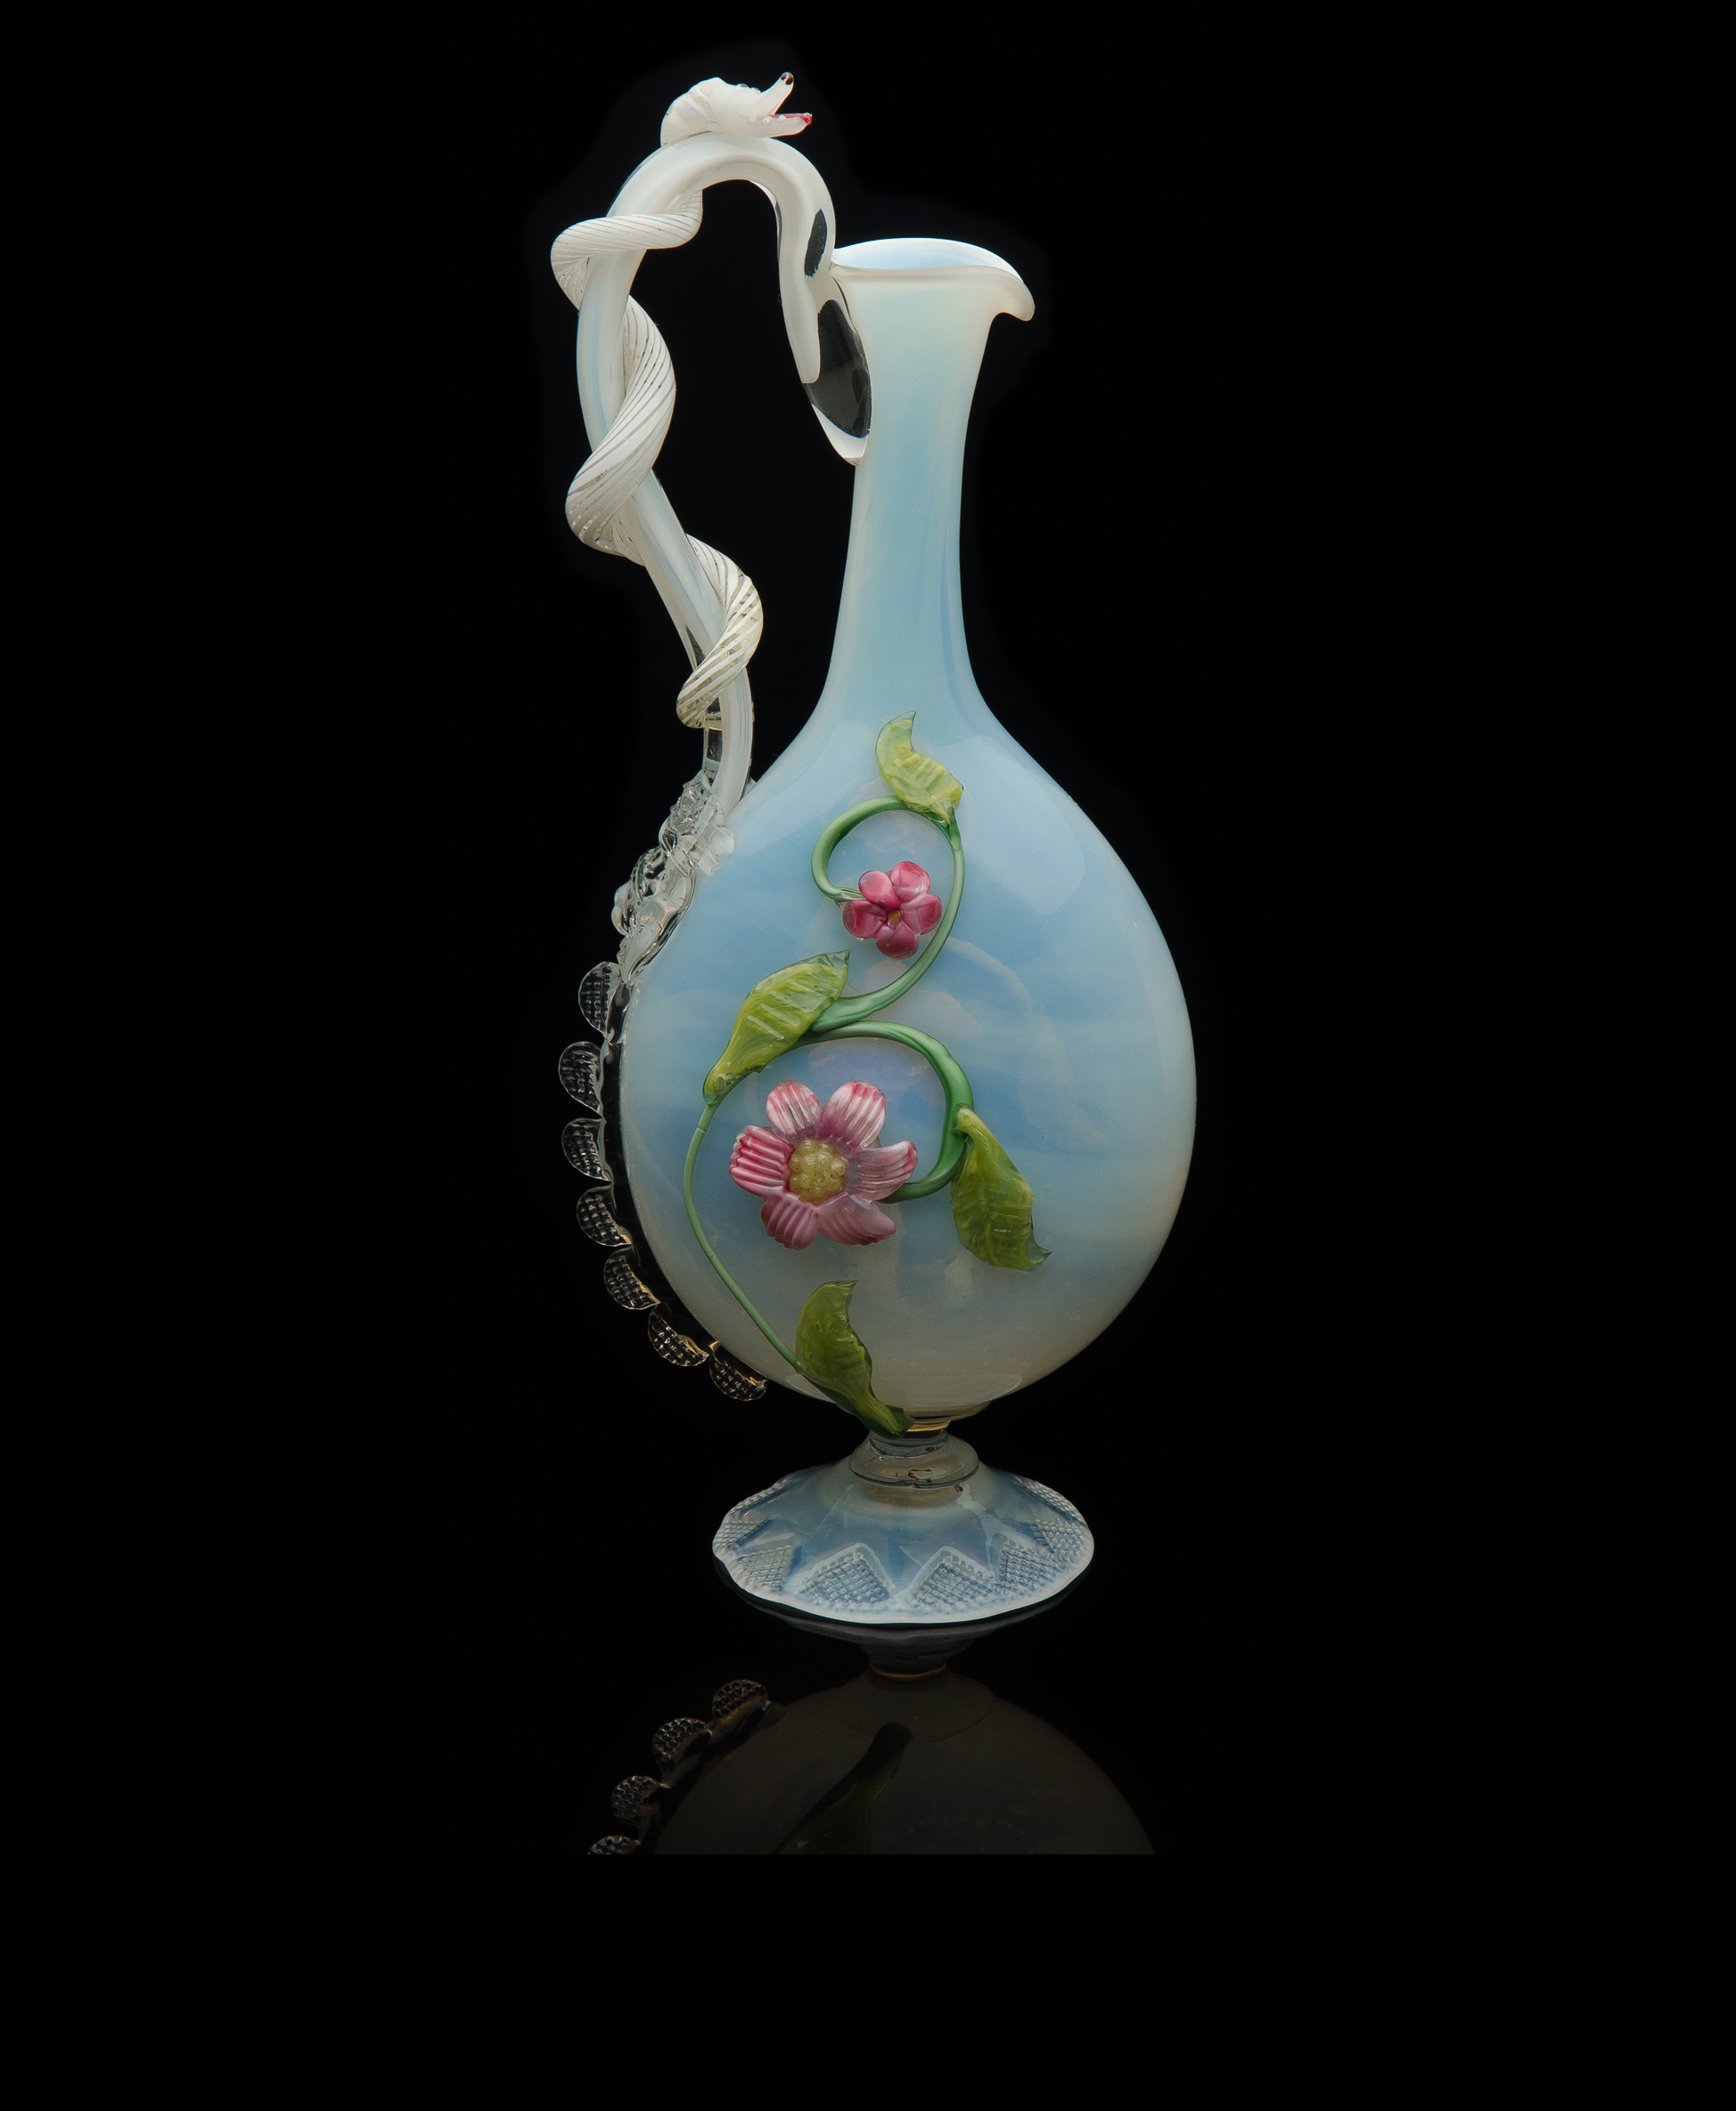 Salviati and Company, White Opal Ewer with Sea Serpent Handle and Applied Flowers (glass), VV.294